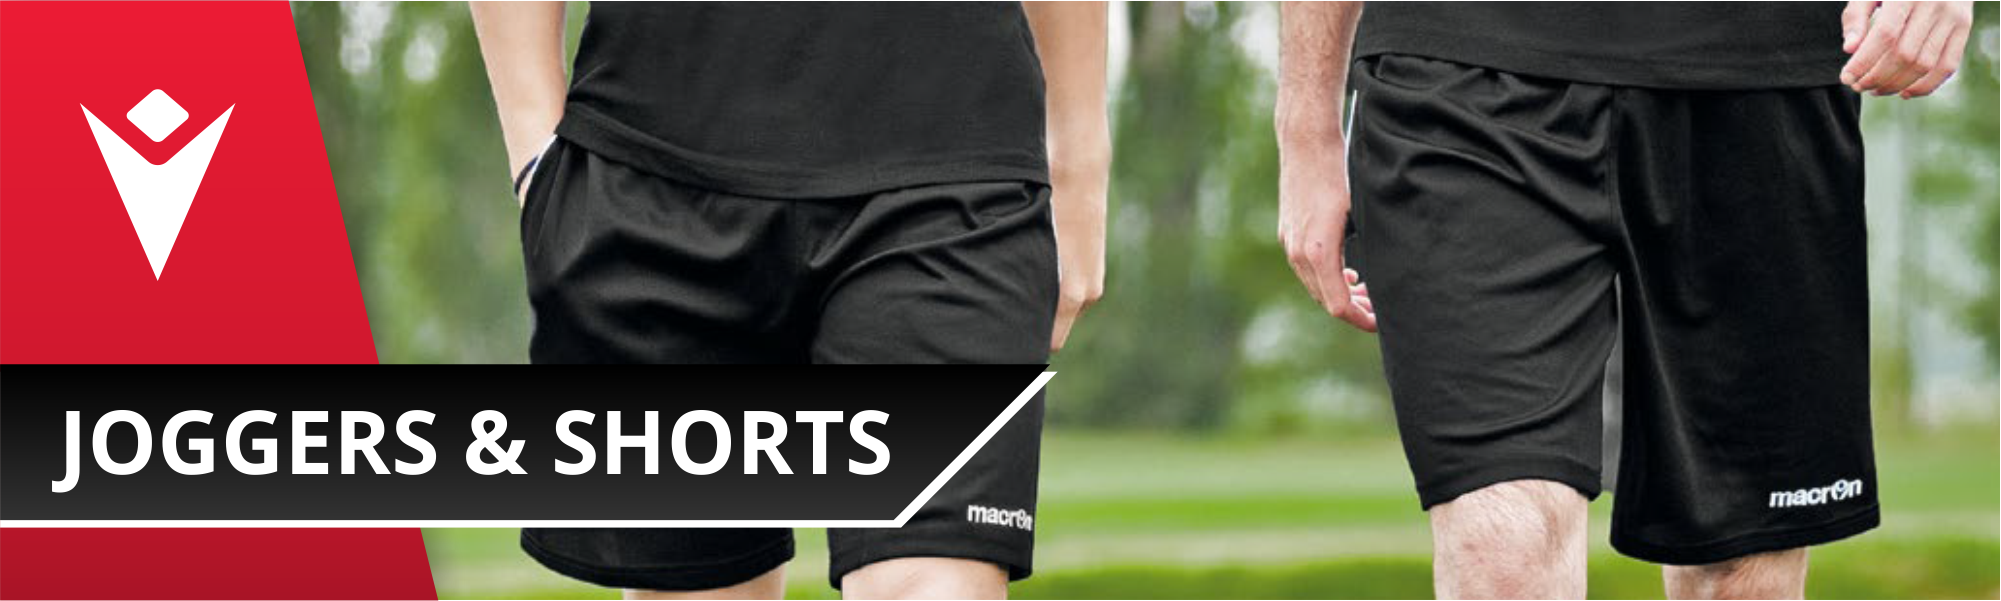 joggers-shorts-banner.png